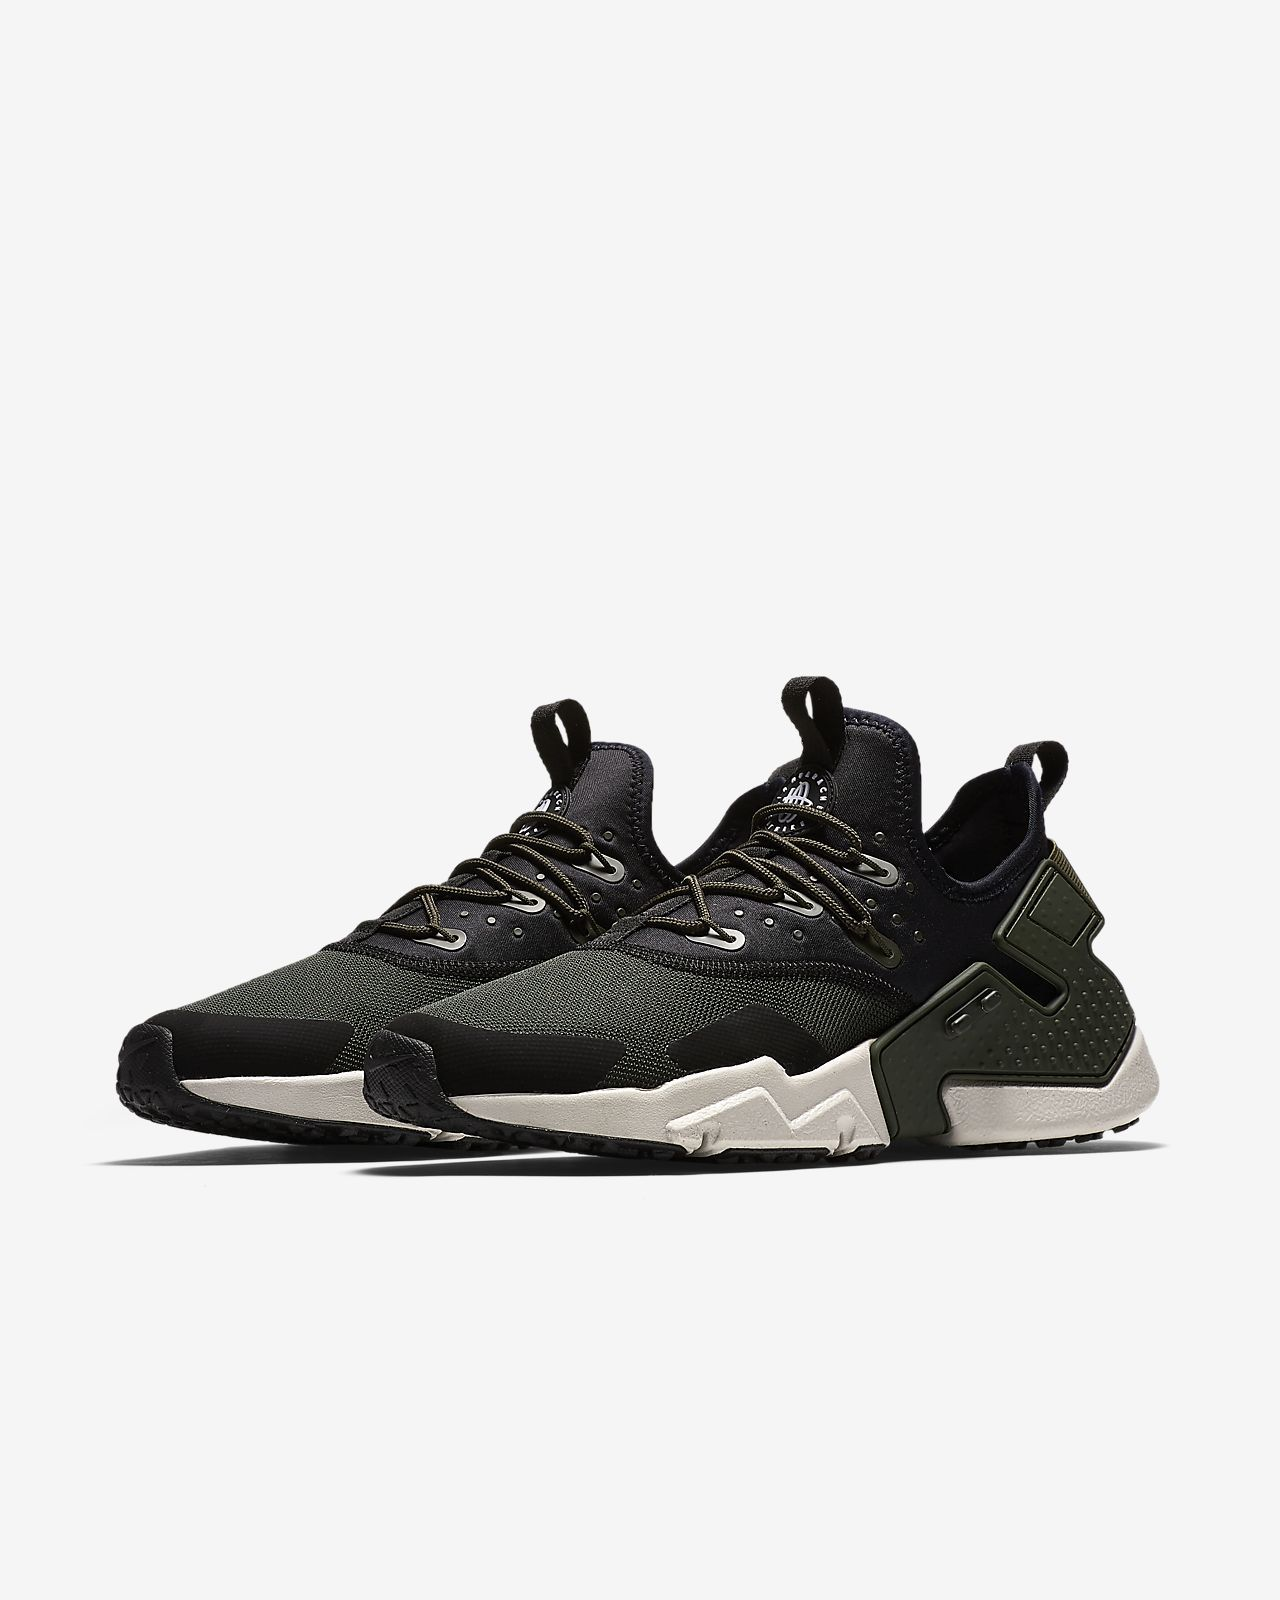 0d9b403a6352 Nike Huarache Drift Men s Shoe in 2019